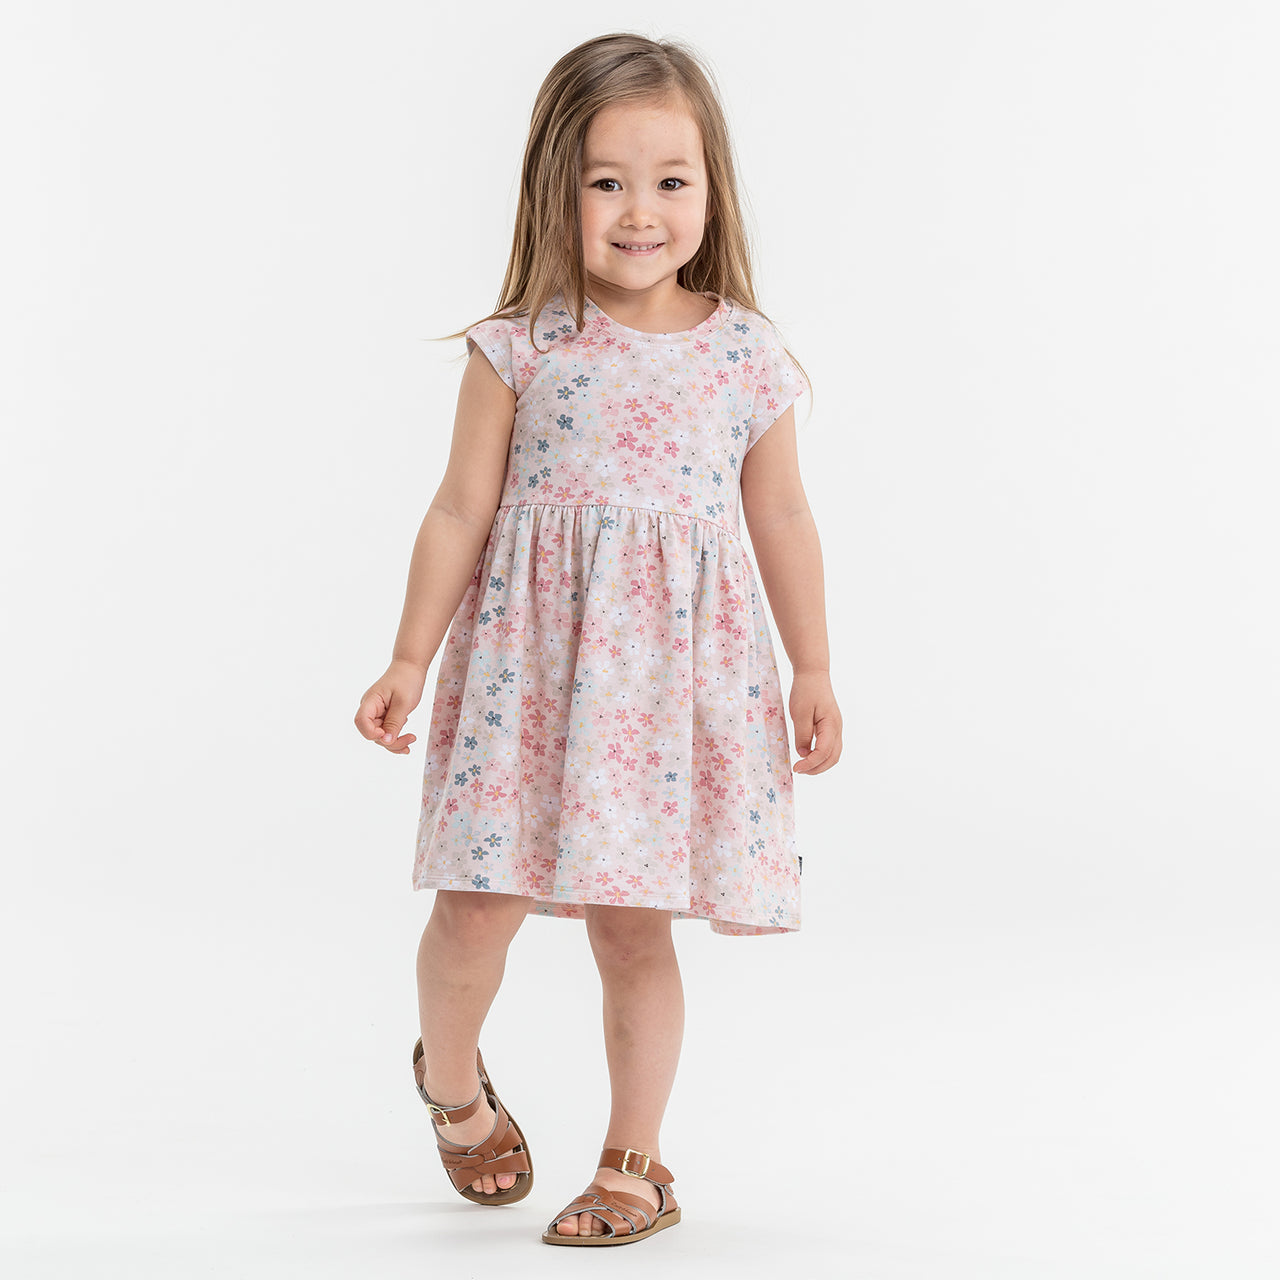 Vonbon organic baby clothes kids clothes and gifts for babies back in bloom negle Choice Image